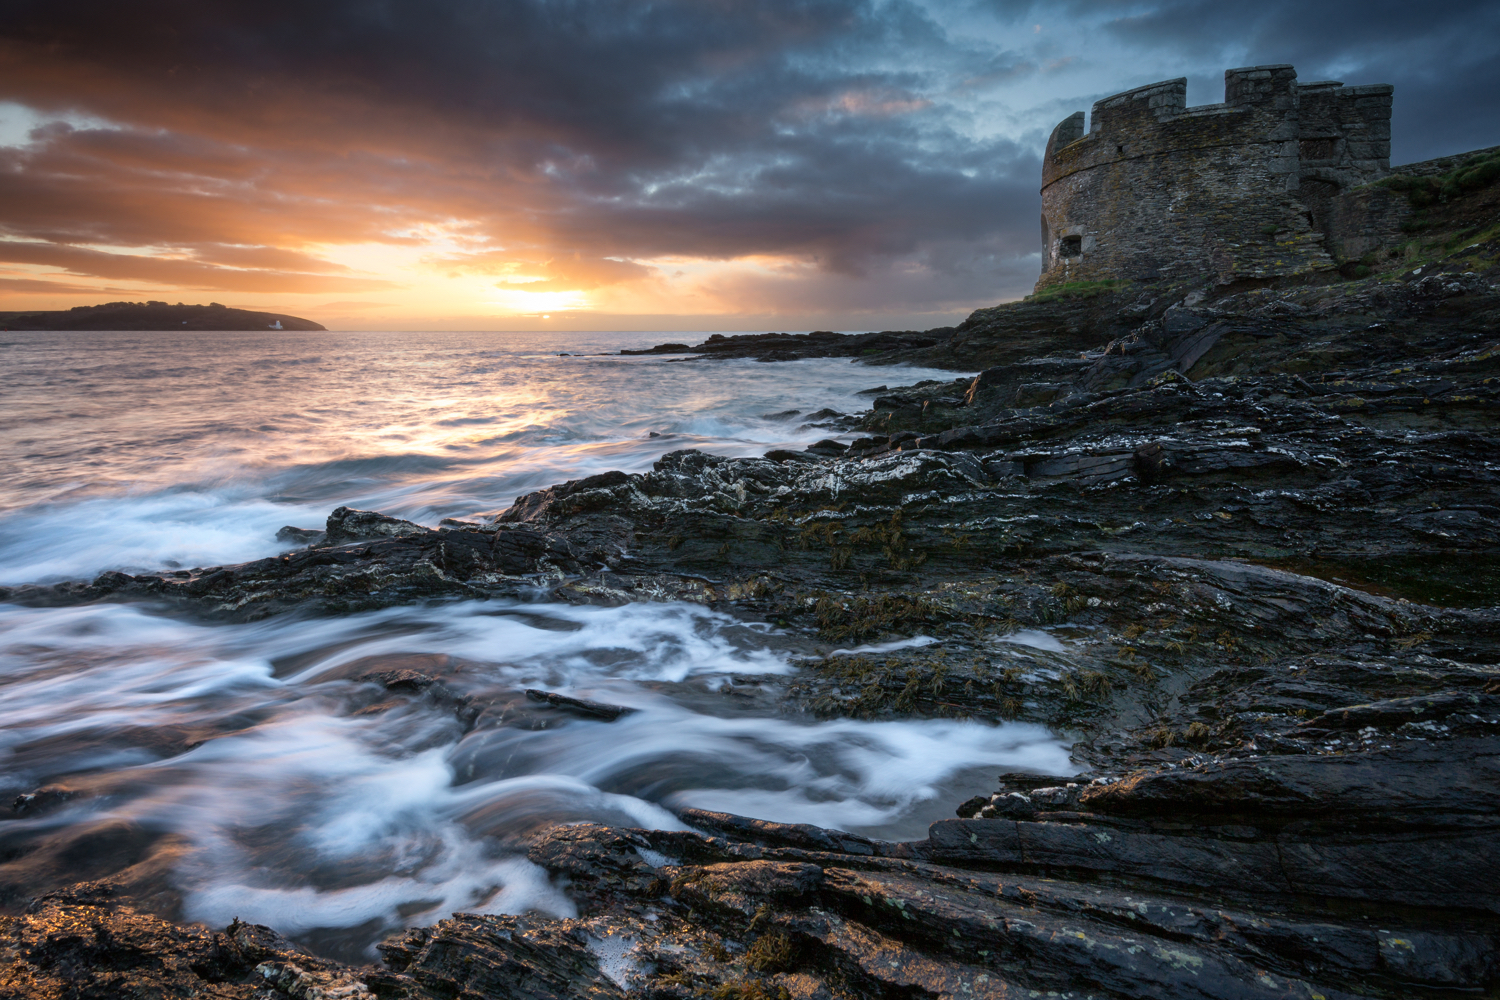 One of the first shots of the year.  A dramatic sunrise at Pendennis Point in Falmouth.